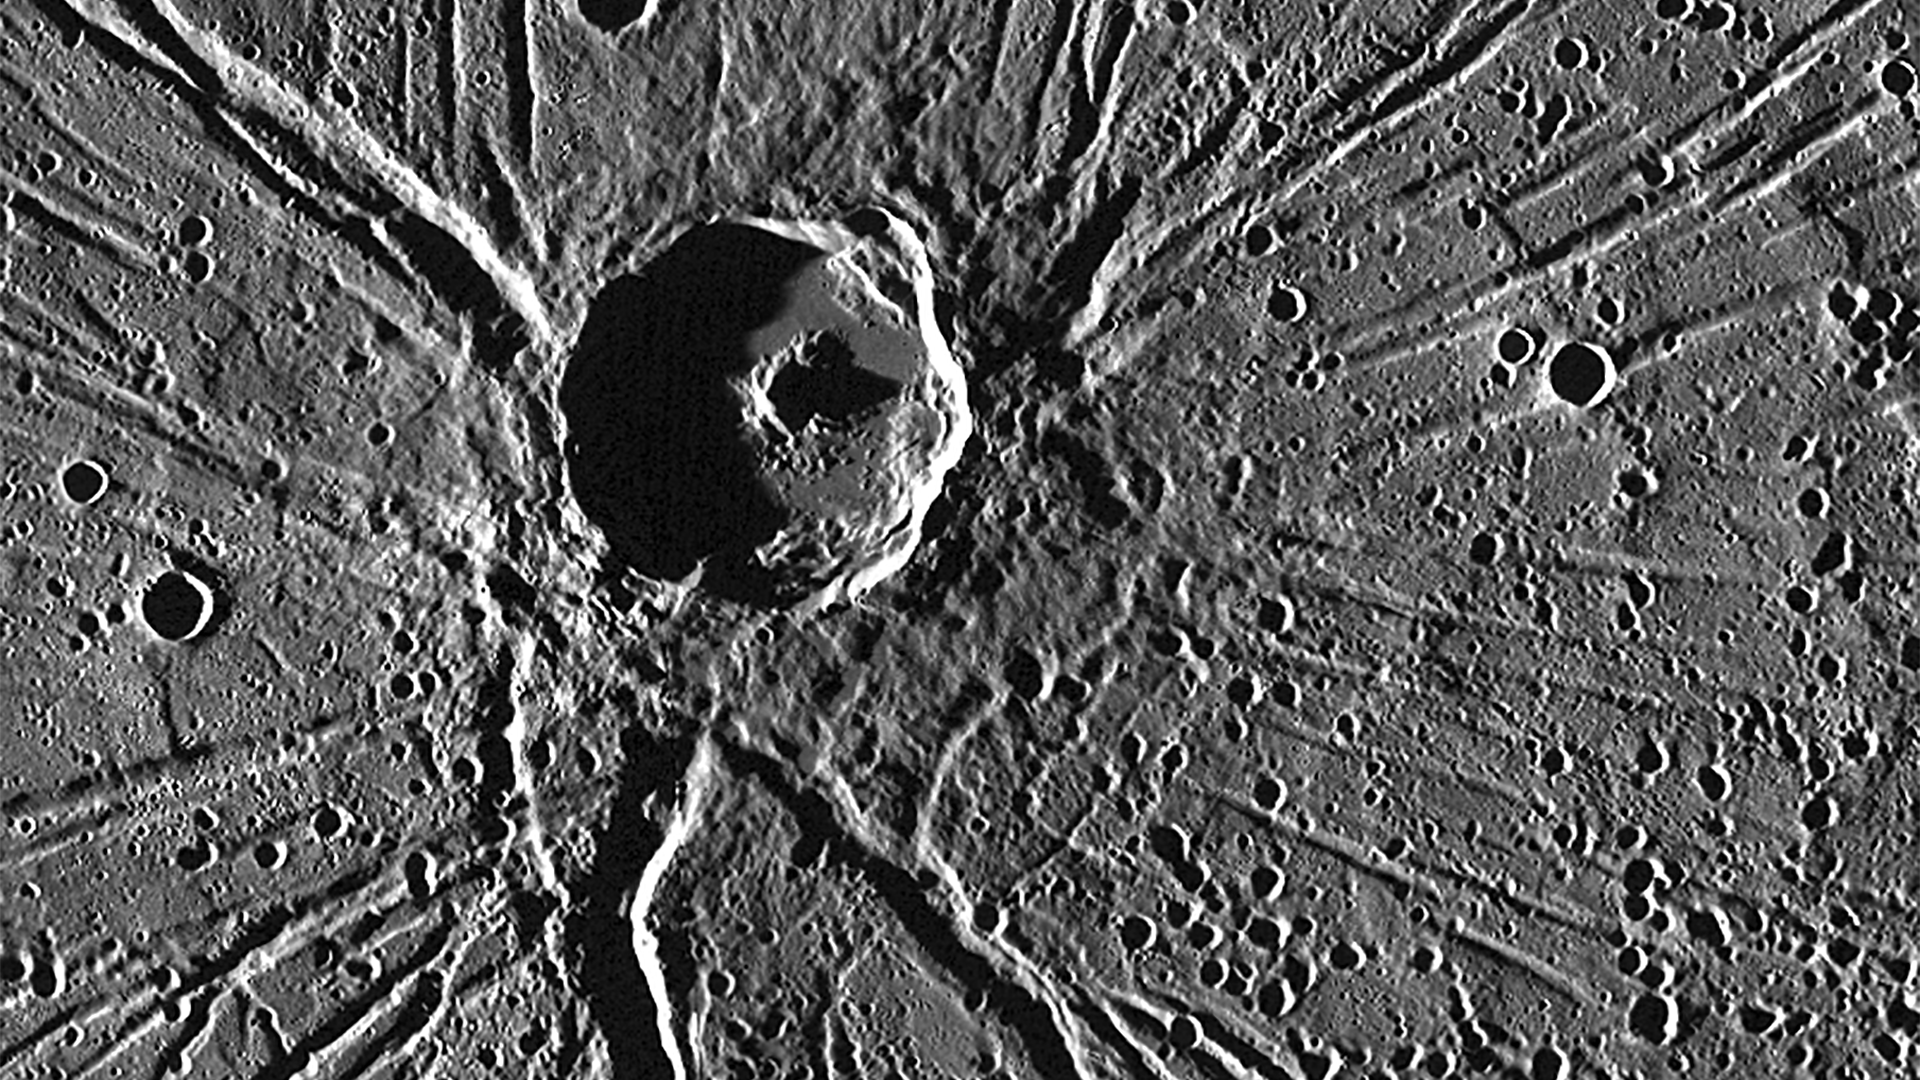 """<p>A feature on Mercury known as """"the spider,"""" the giant crater Apollodorus with the Pantheon Fossae radiating out. (<a href=""""http://photojournal.jpl.nasa.gov/catalog/PIA19410"""">Source</a>) </p>"""